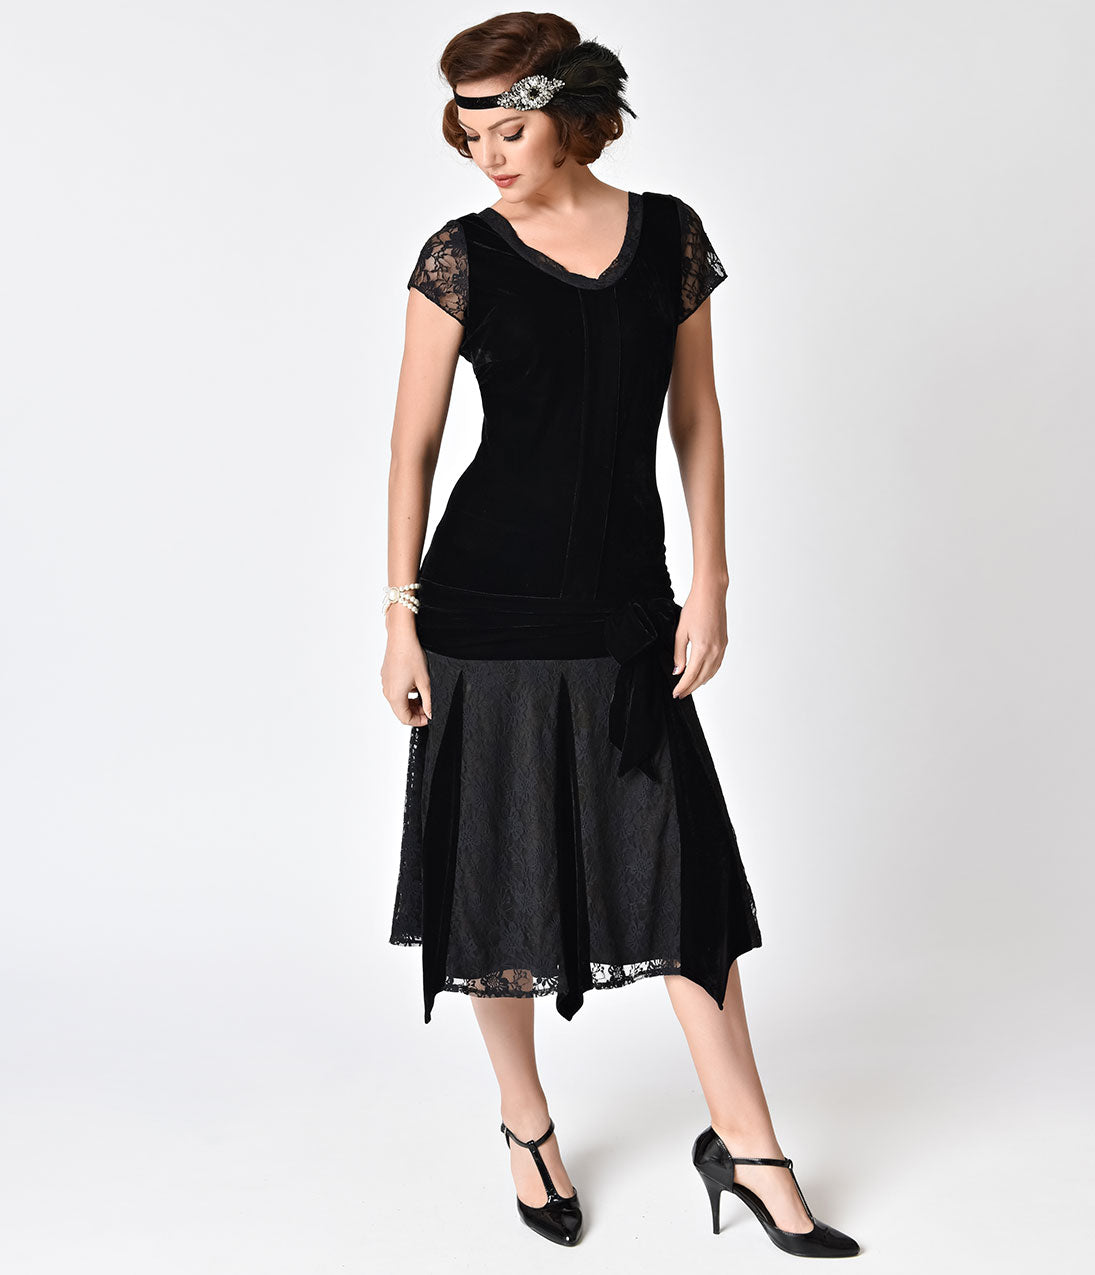 1930s Evening Dresses | Old Hollywood Dress Velvet Short Sleeve Millie Flapper Dress $60.00 AT vintagedancer.com